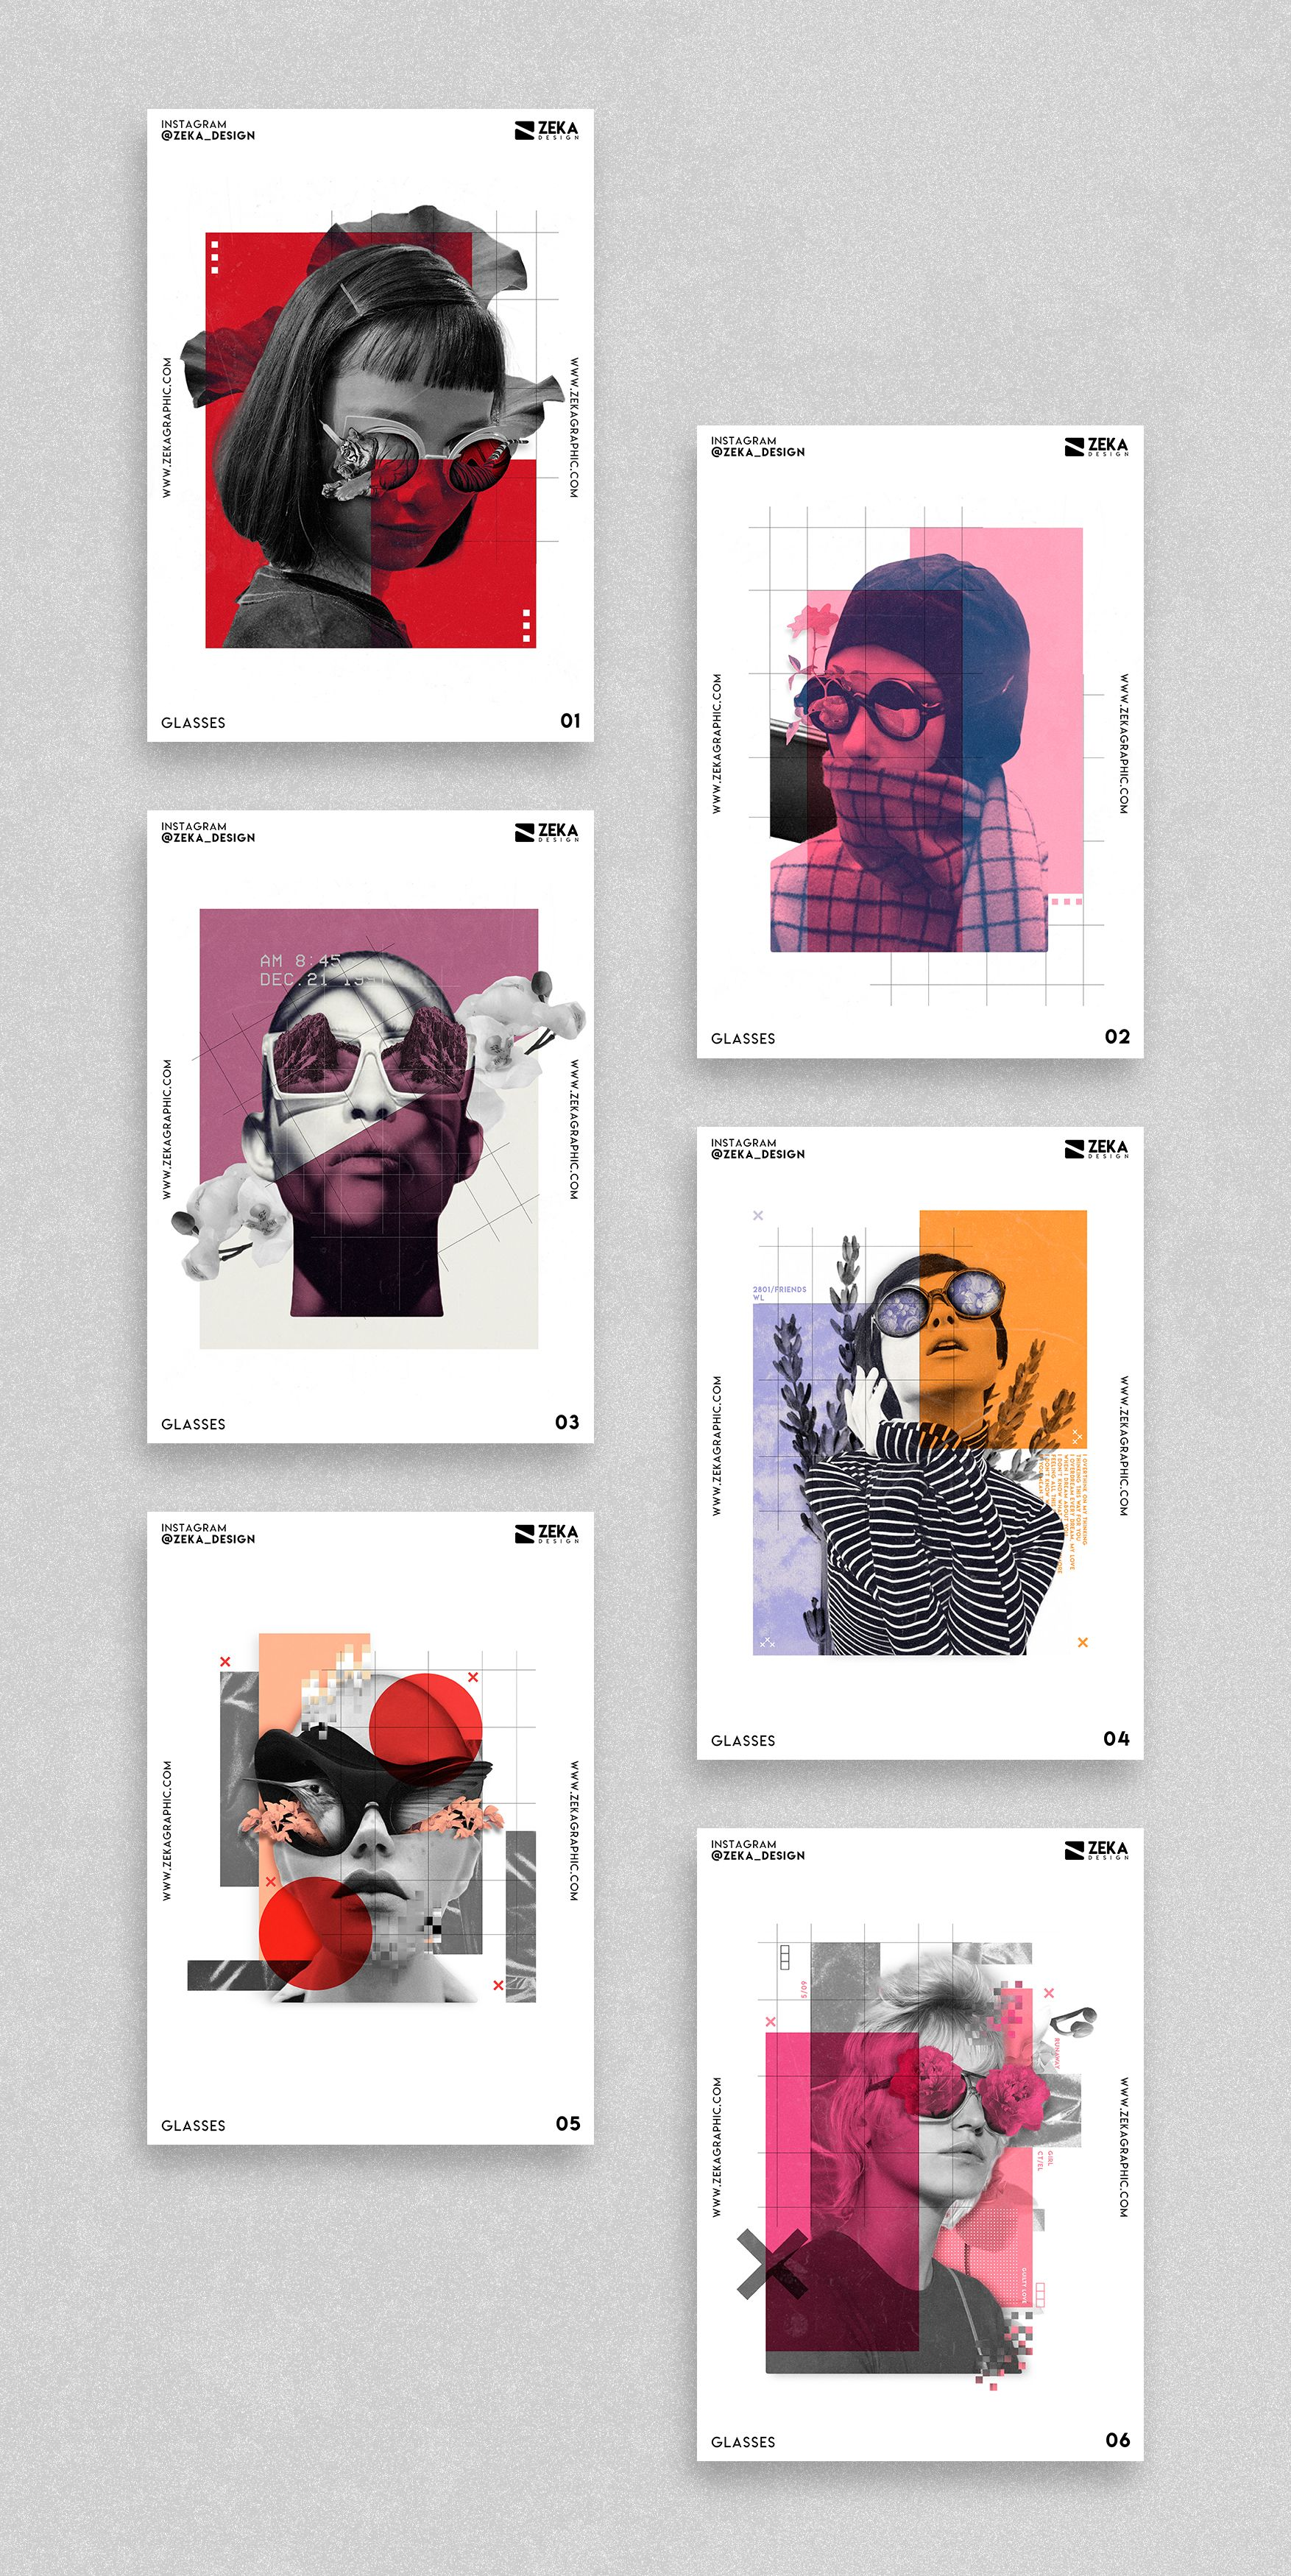 Glasses Poster Design Project Graphic Design Inspiration by Zeka Design